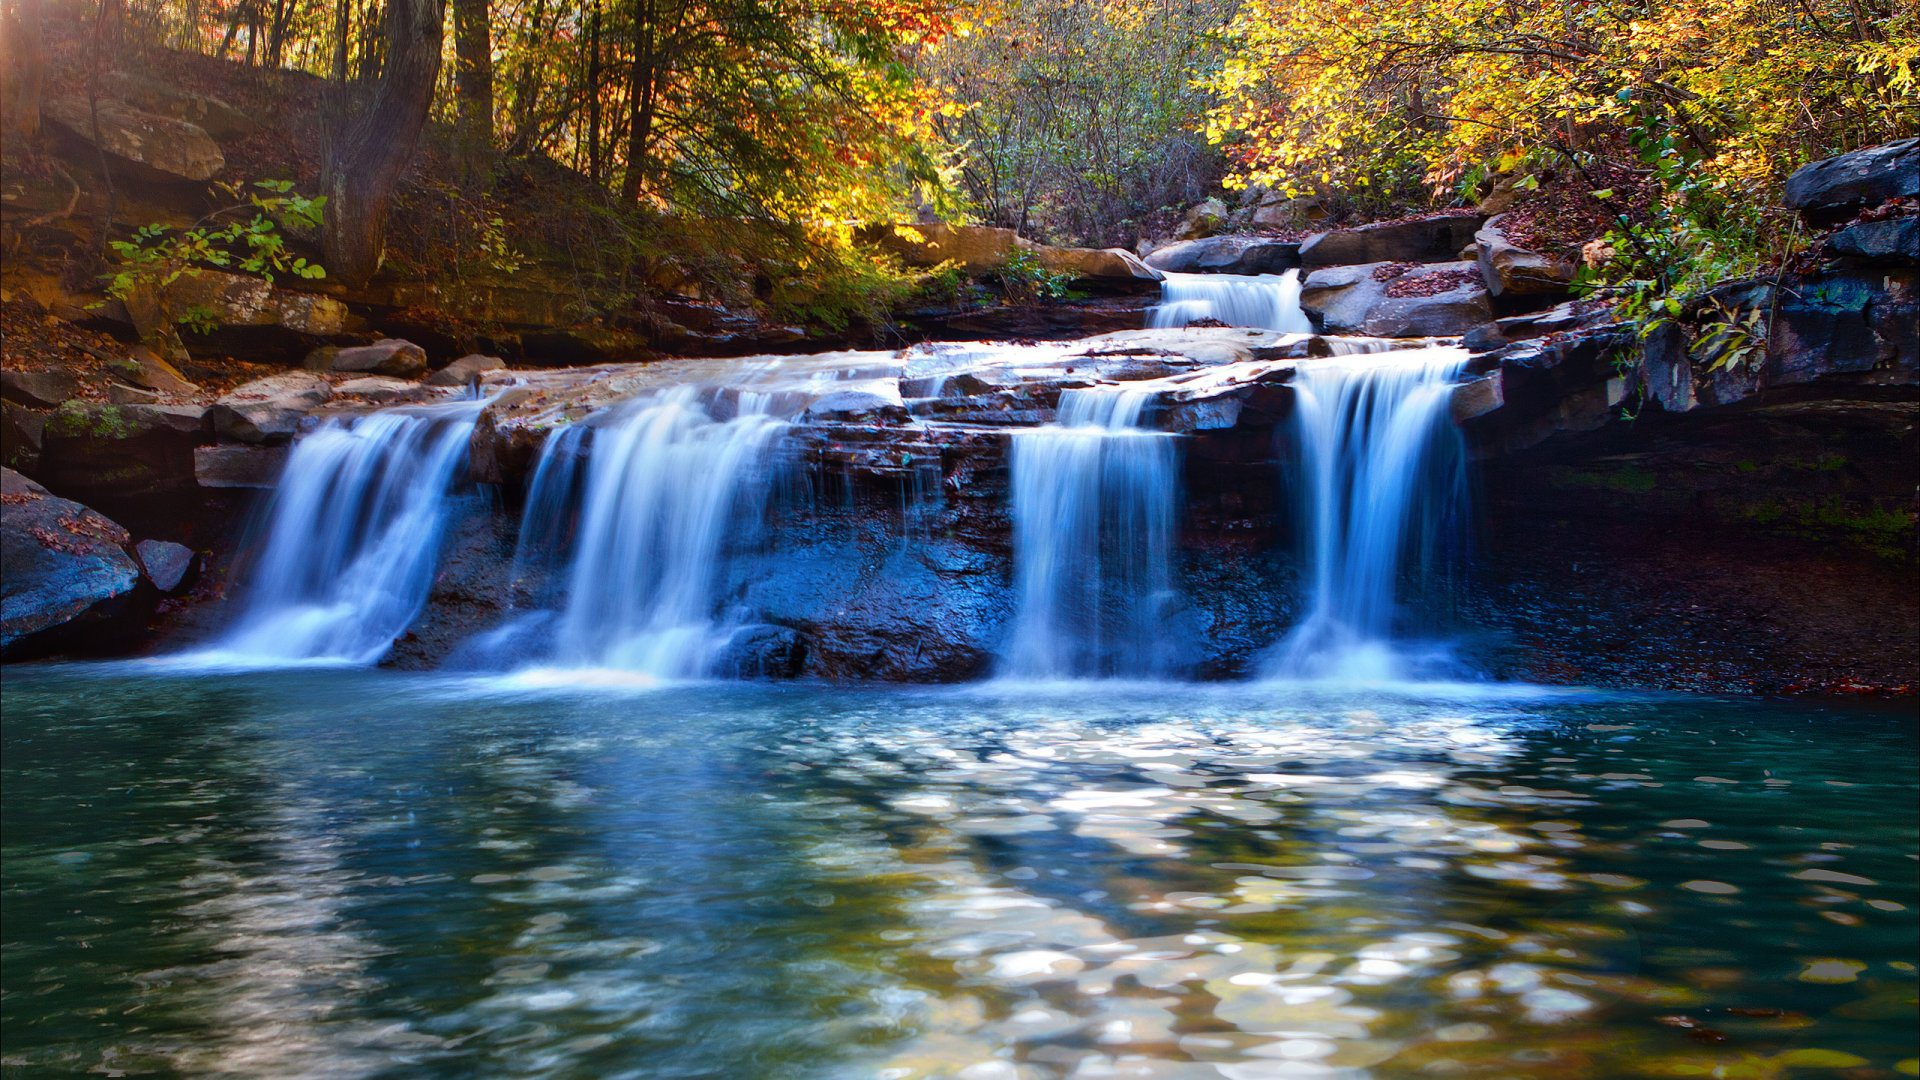 HD Wallpaper Waterfall Download